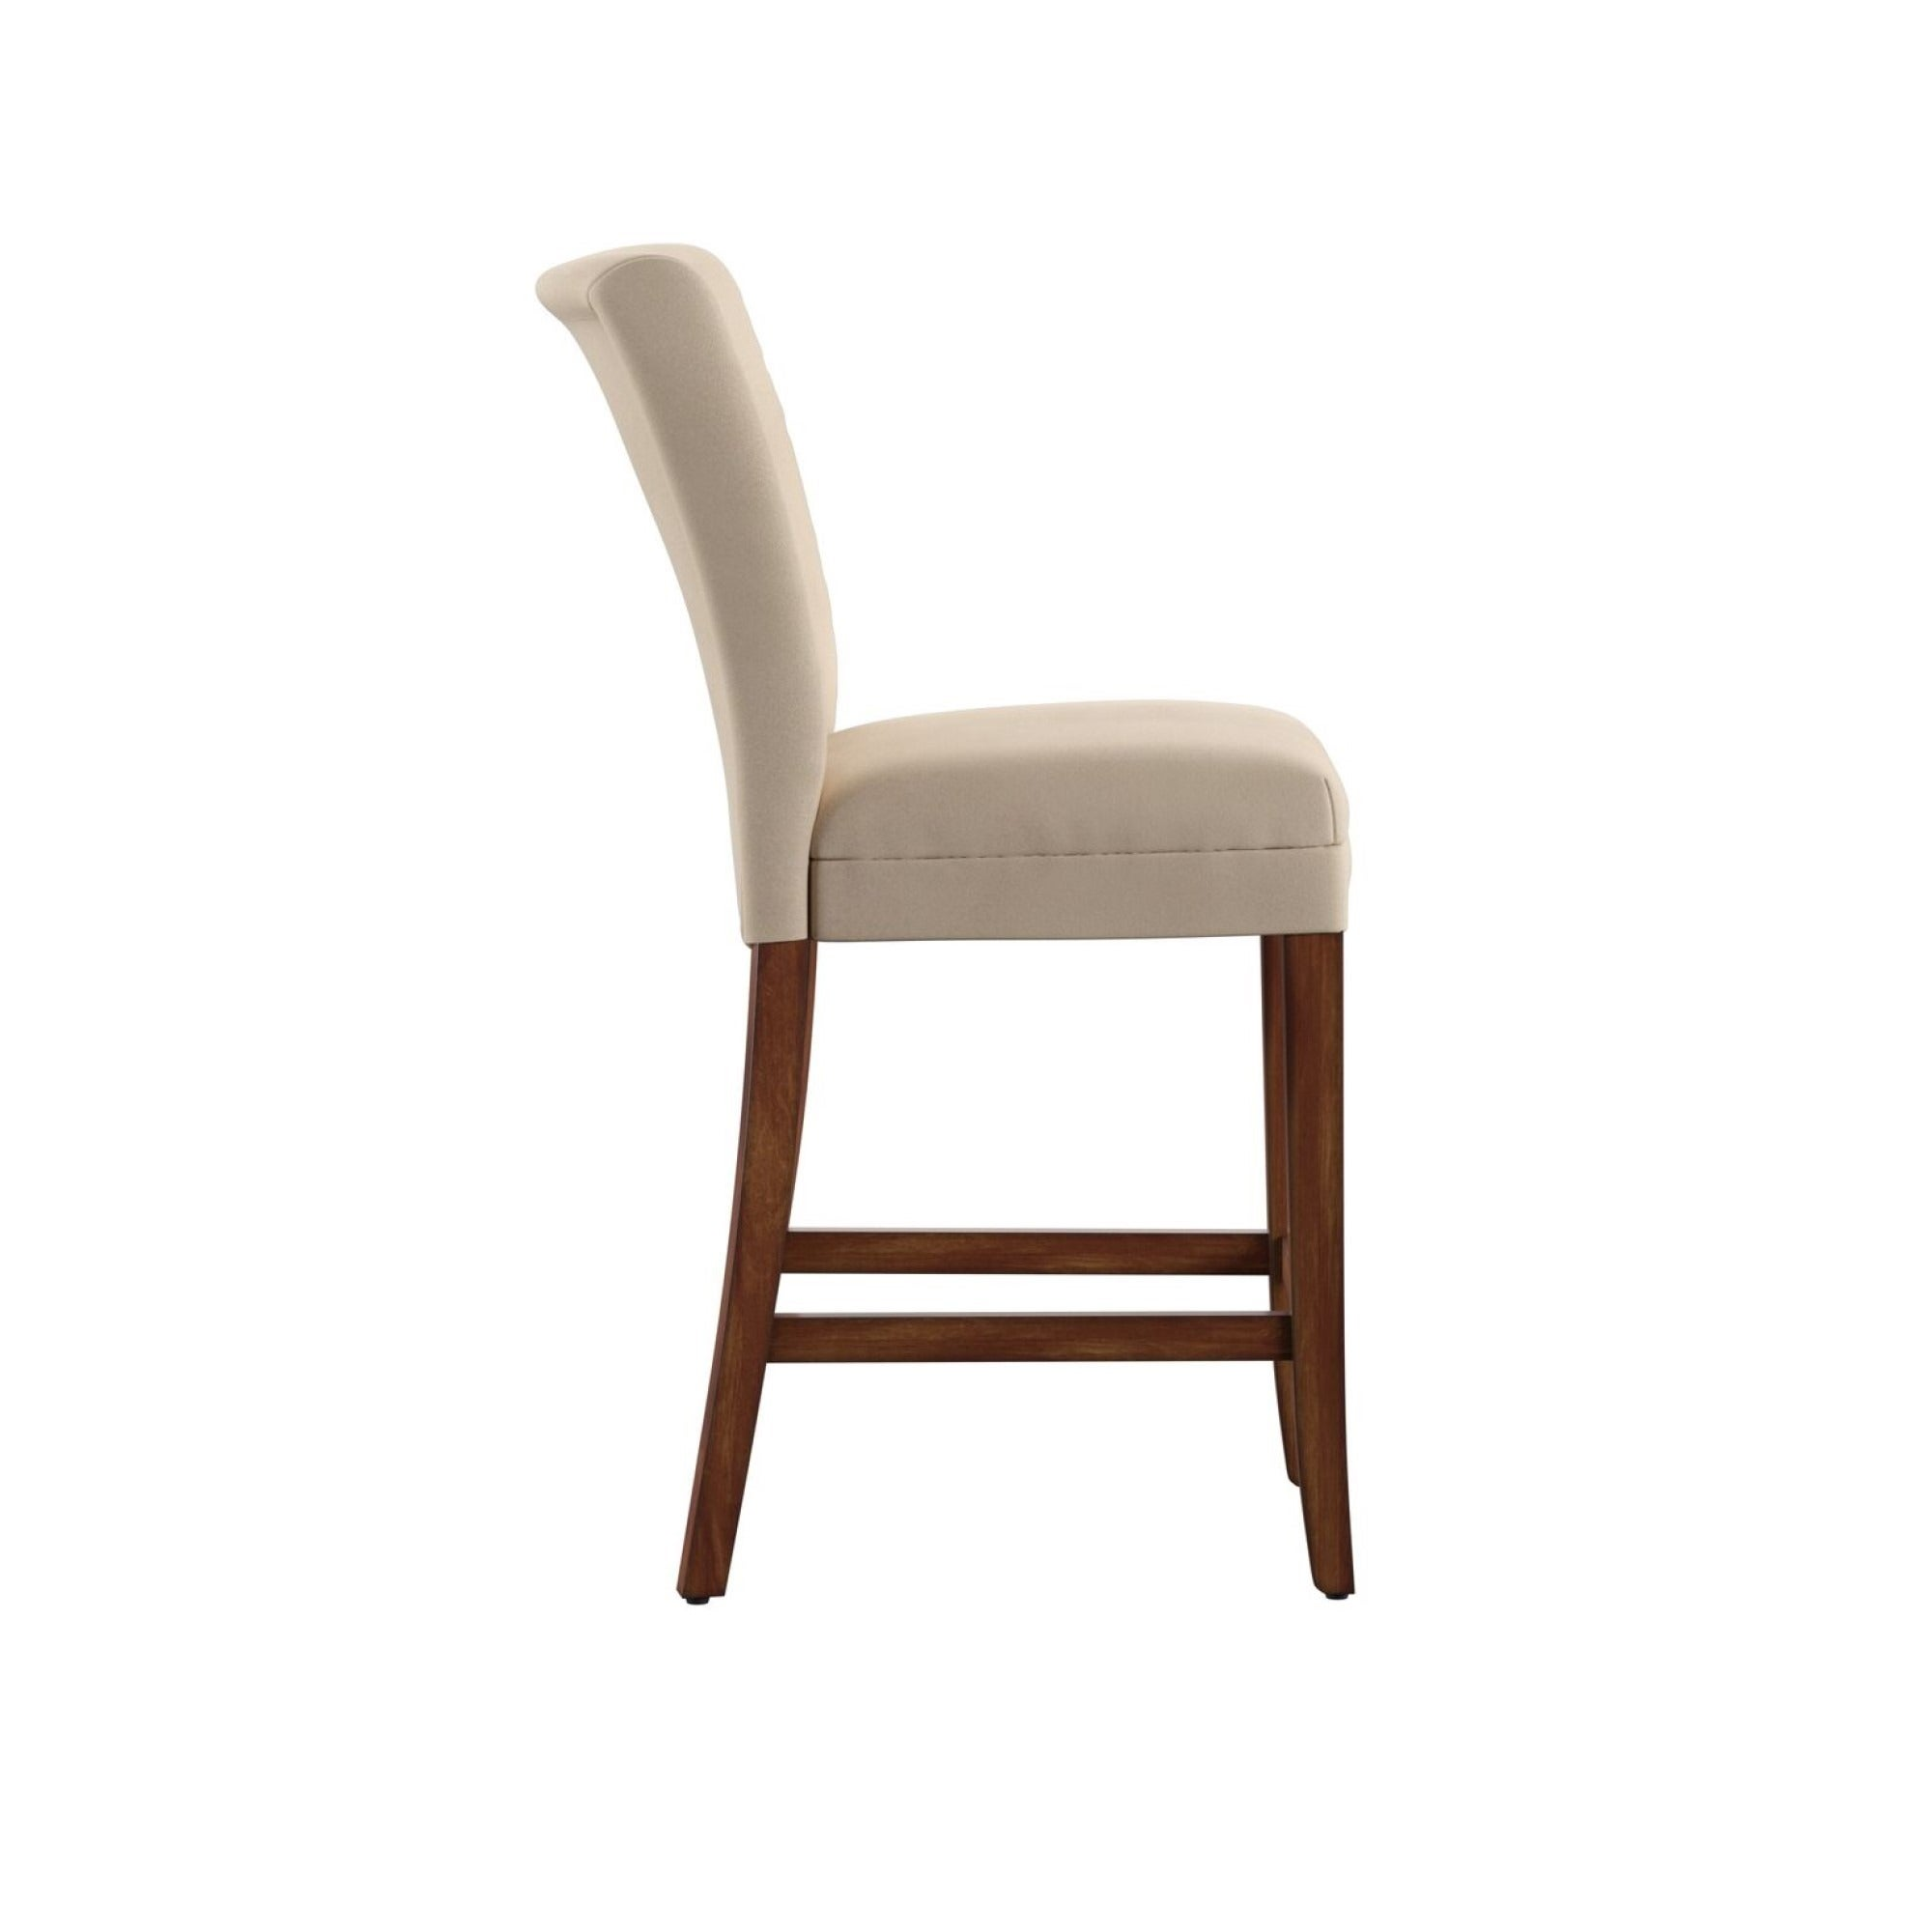 6bc2ee75b20 Shop Parson Classic Upholstered Counter Height High Back Chairs (Set of 2)  by iNSPIRE Q Bold - On Sale - Free Shipping Today - Overstock - 3471658